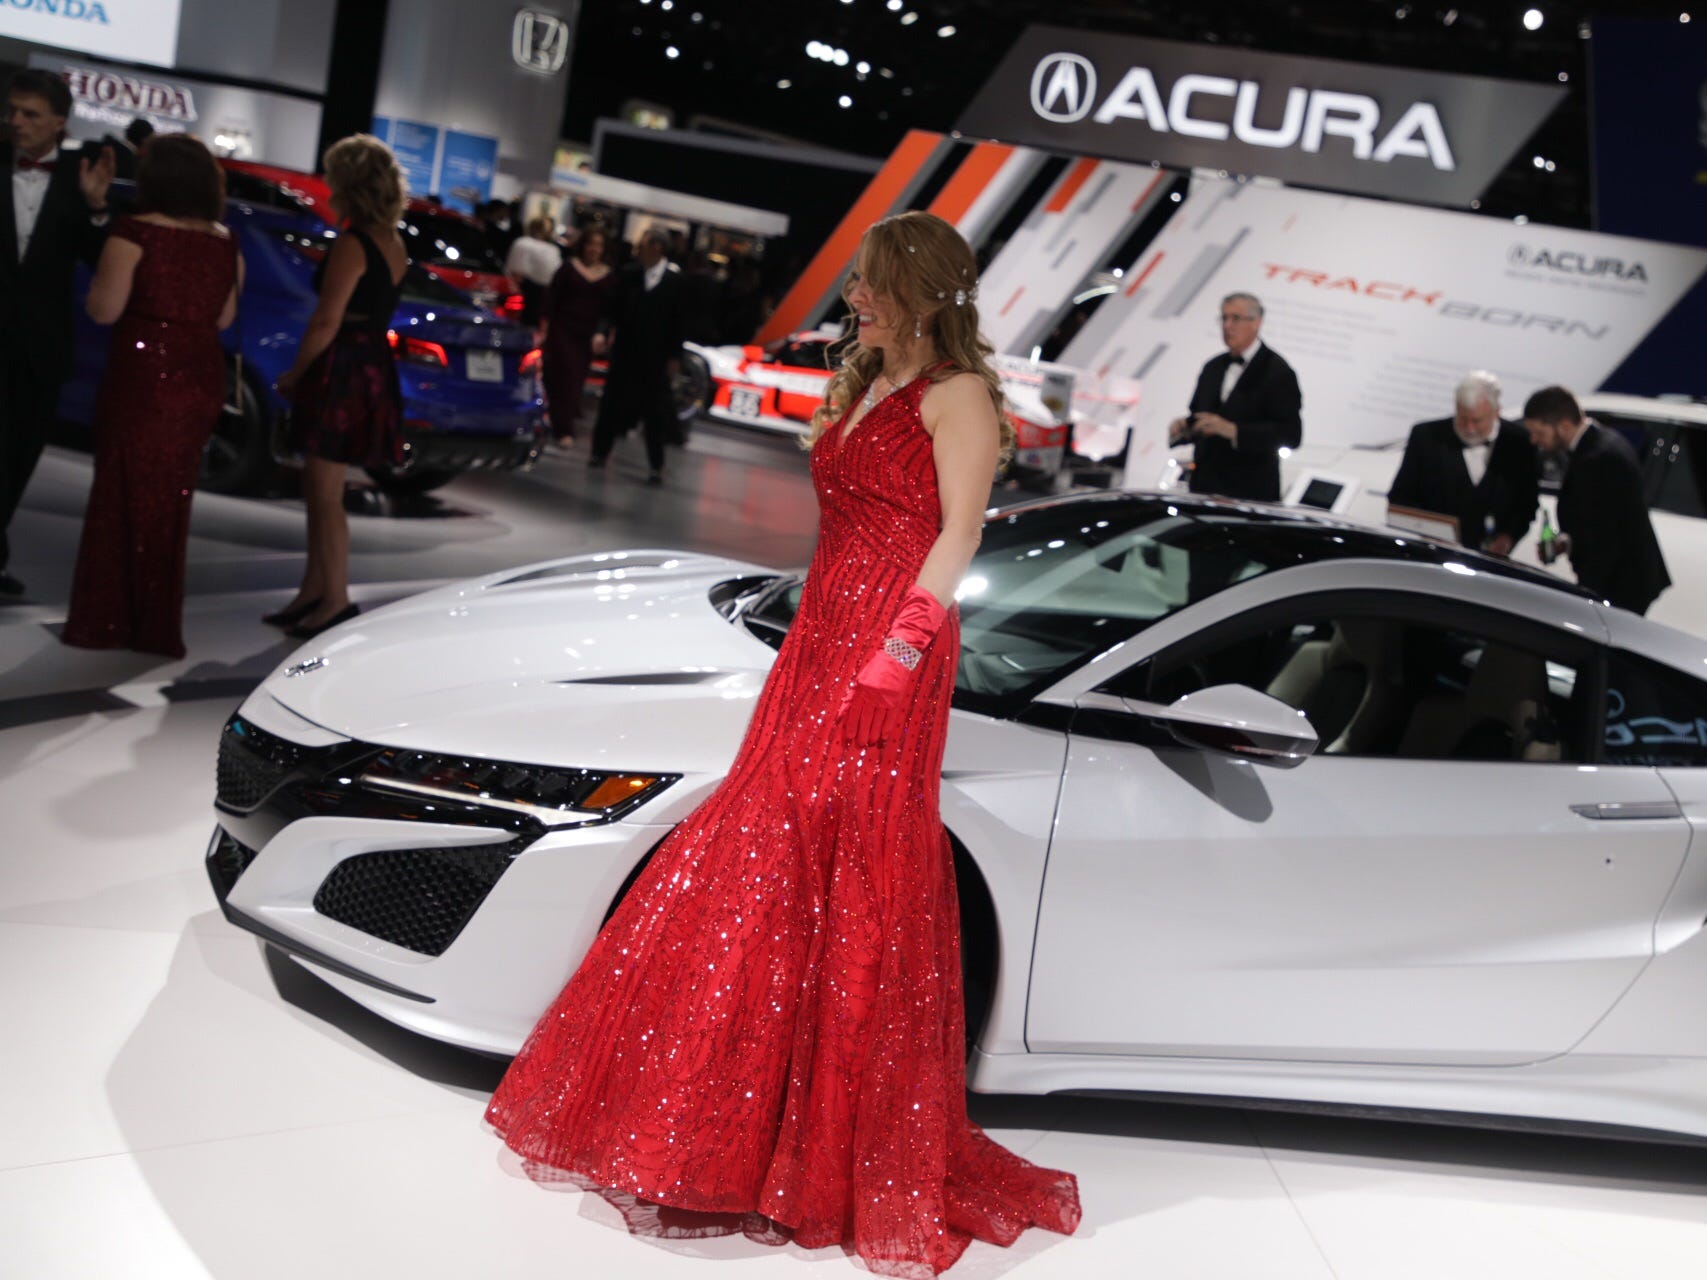 Julie Berry of Clarkston poses with a 2019 Acura NSX during the 2019 North American International Auto Show Charity Preview at Cobo Center in Detroit on Friday, January 18, 2019.